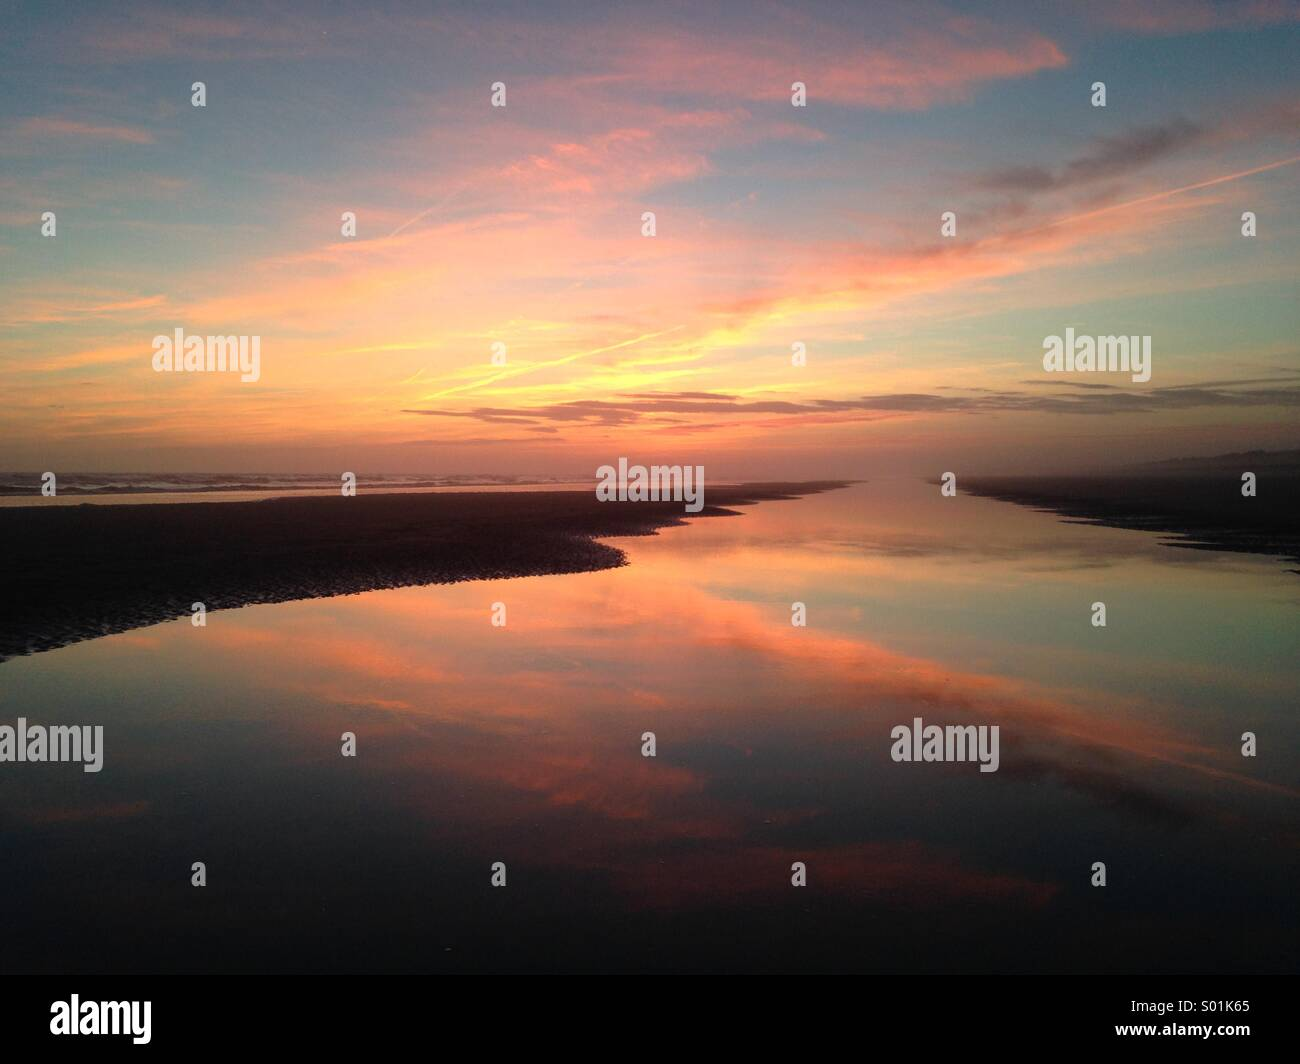 Kiawah Island Sunset - Stock Image